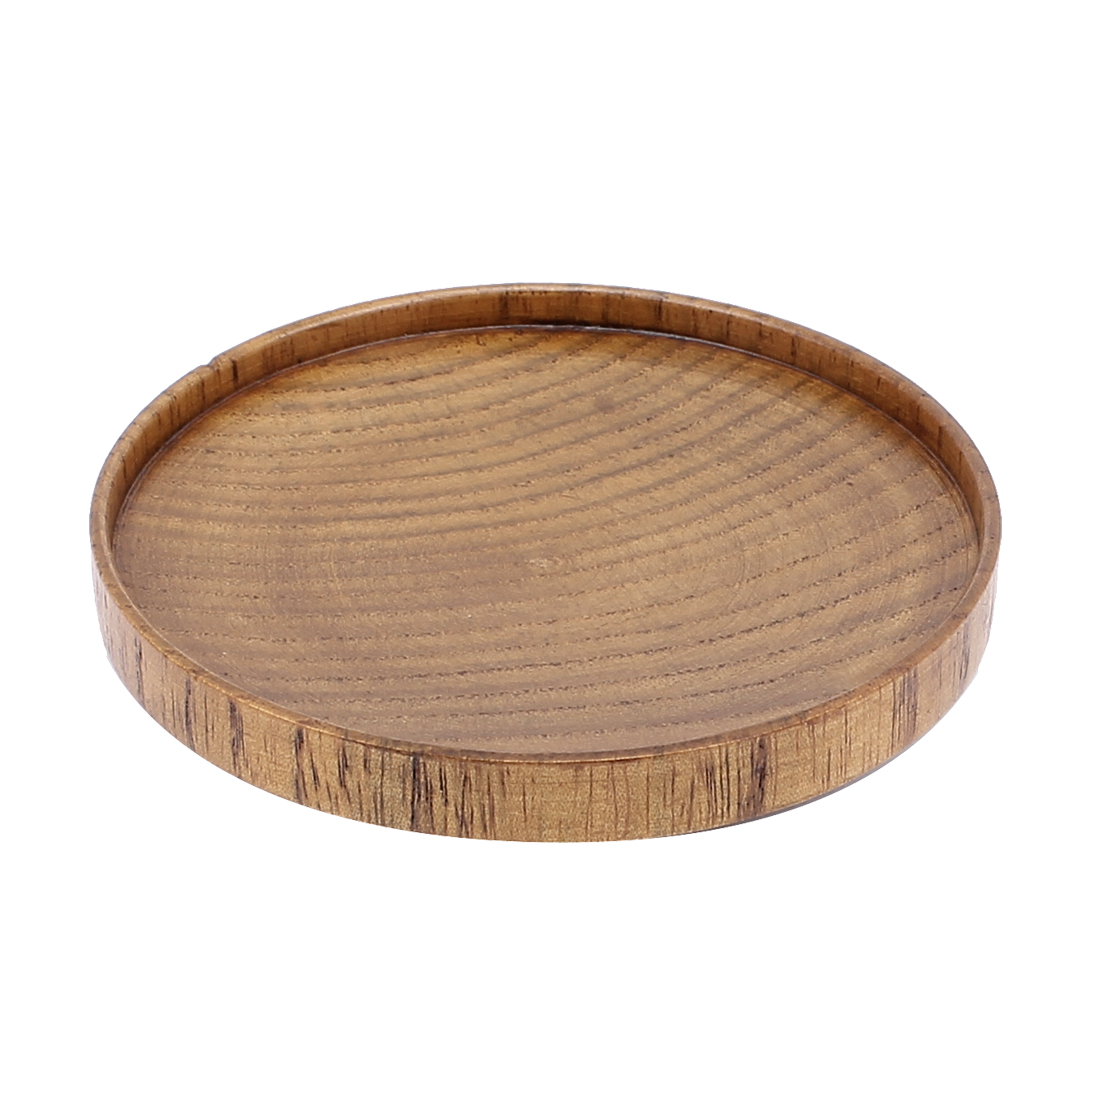 Unique Bargains Kitchen Wooden Round Shaped Rice Meat Dish Plate Tableware Brown 8.2*1cm